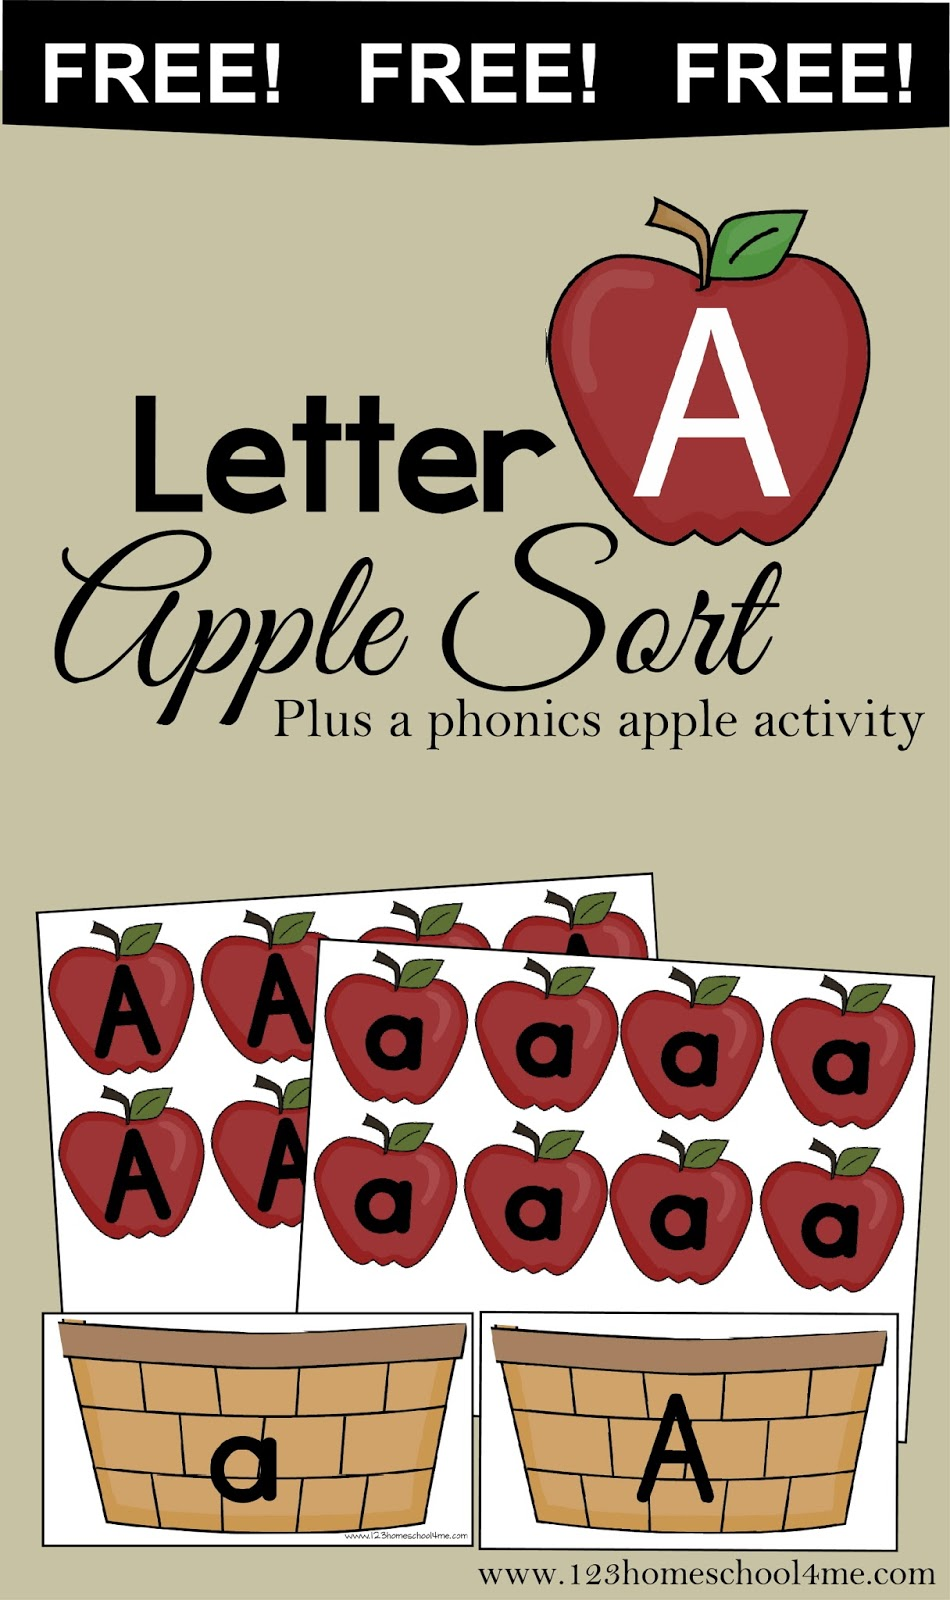 FREE LETTER A APPLE SORT (Instant Download) | Free ...